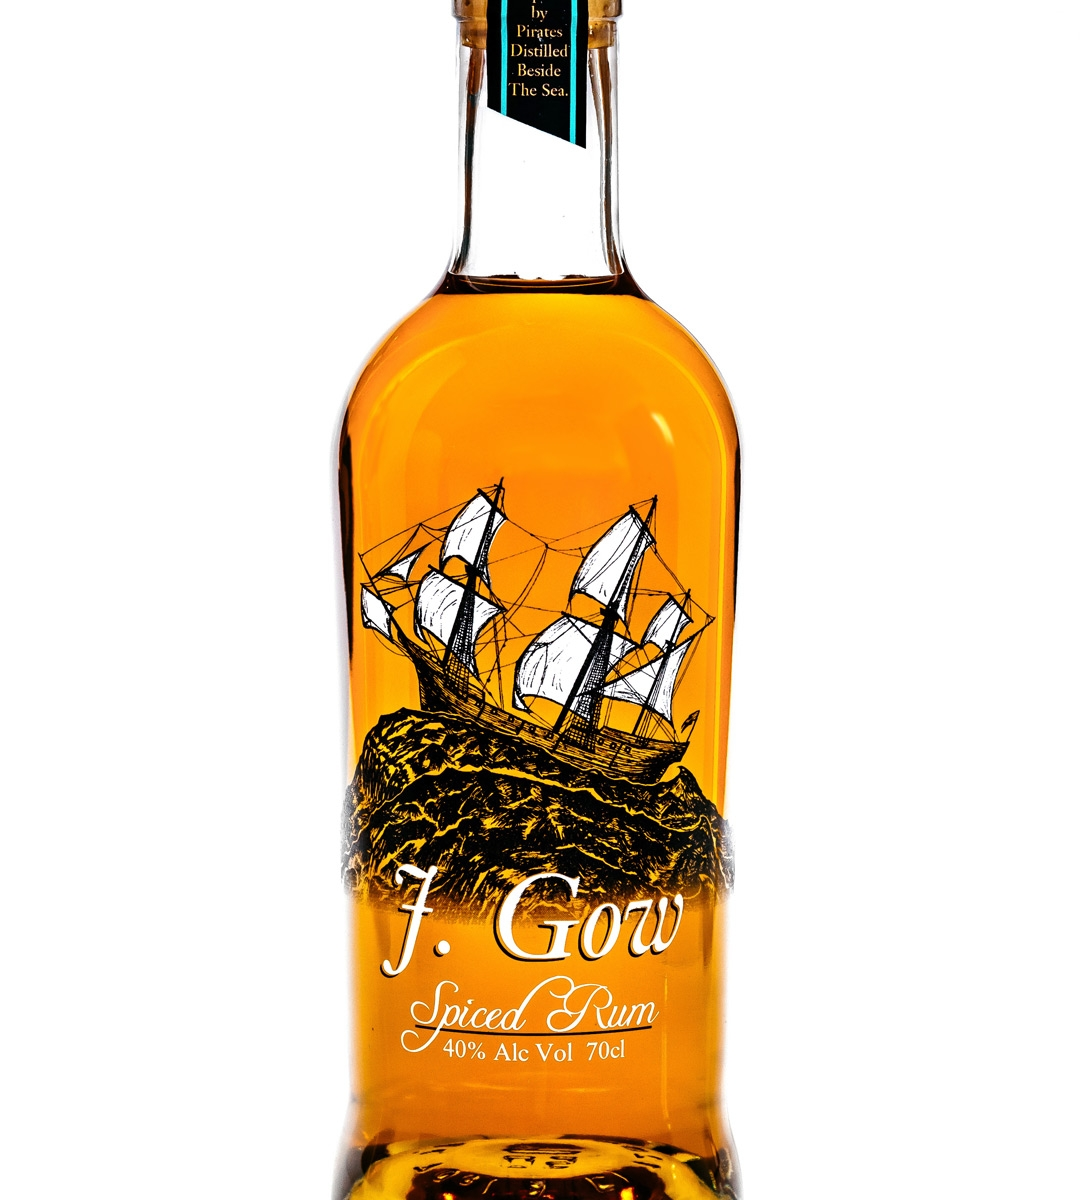 J. Gow Scottish pot still spiced rum